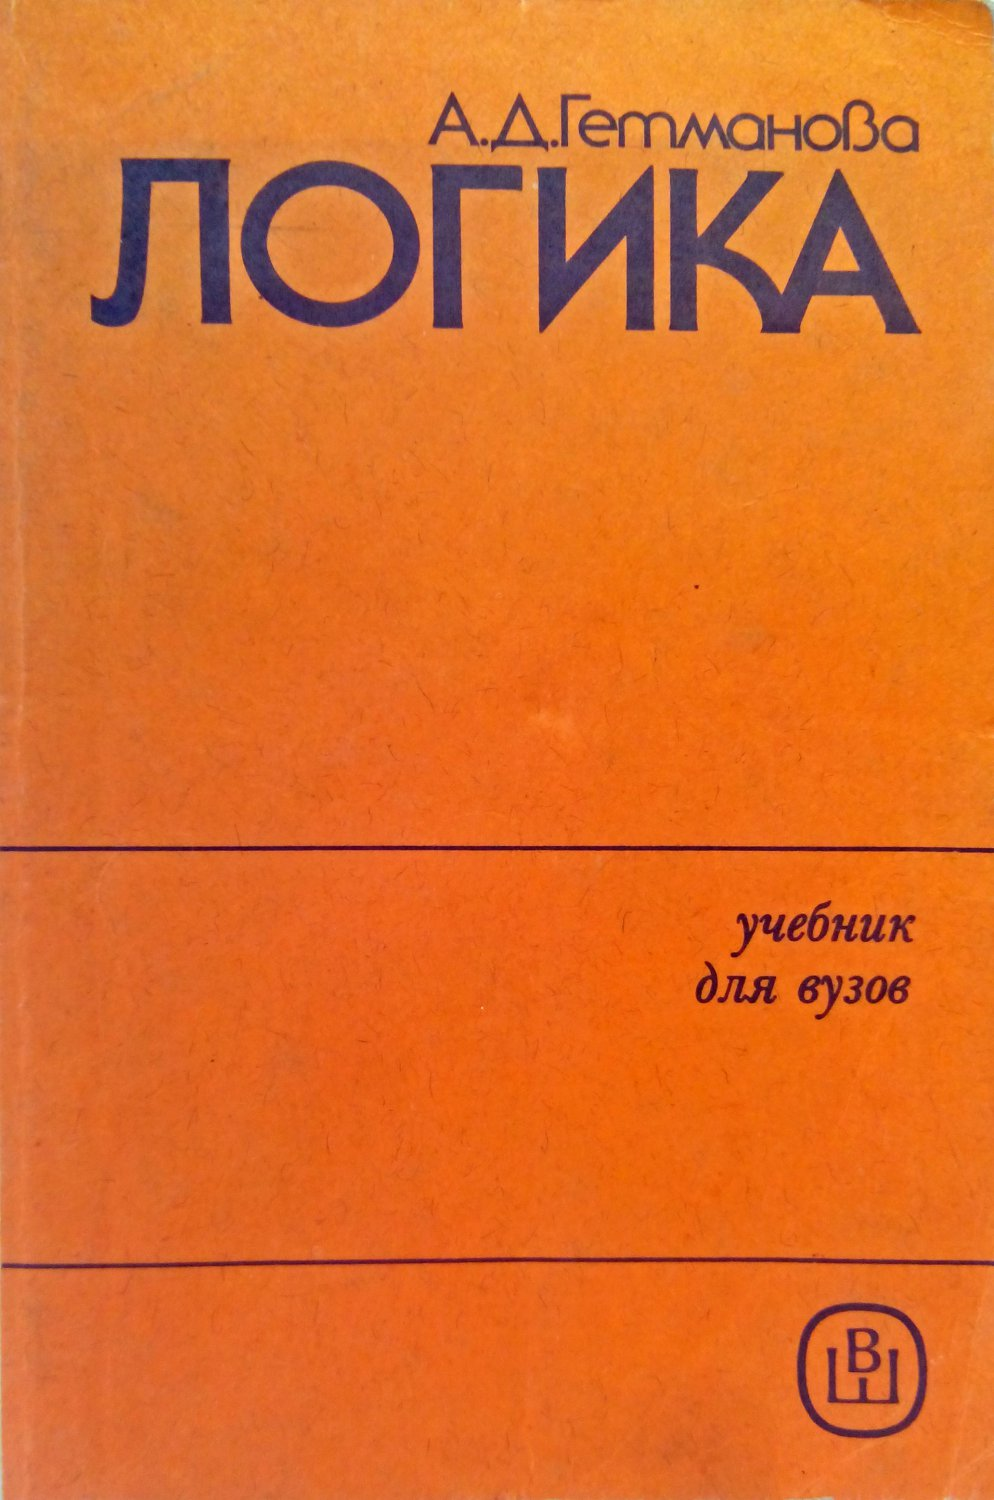 Logic. USSR textbook for higher education. �огика. �.�.�е�манова. У�ебник